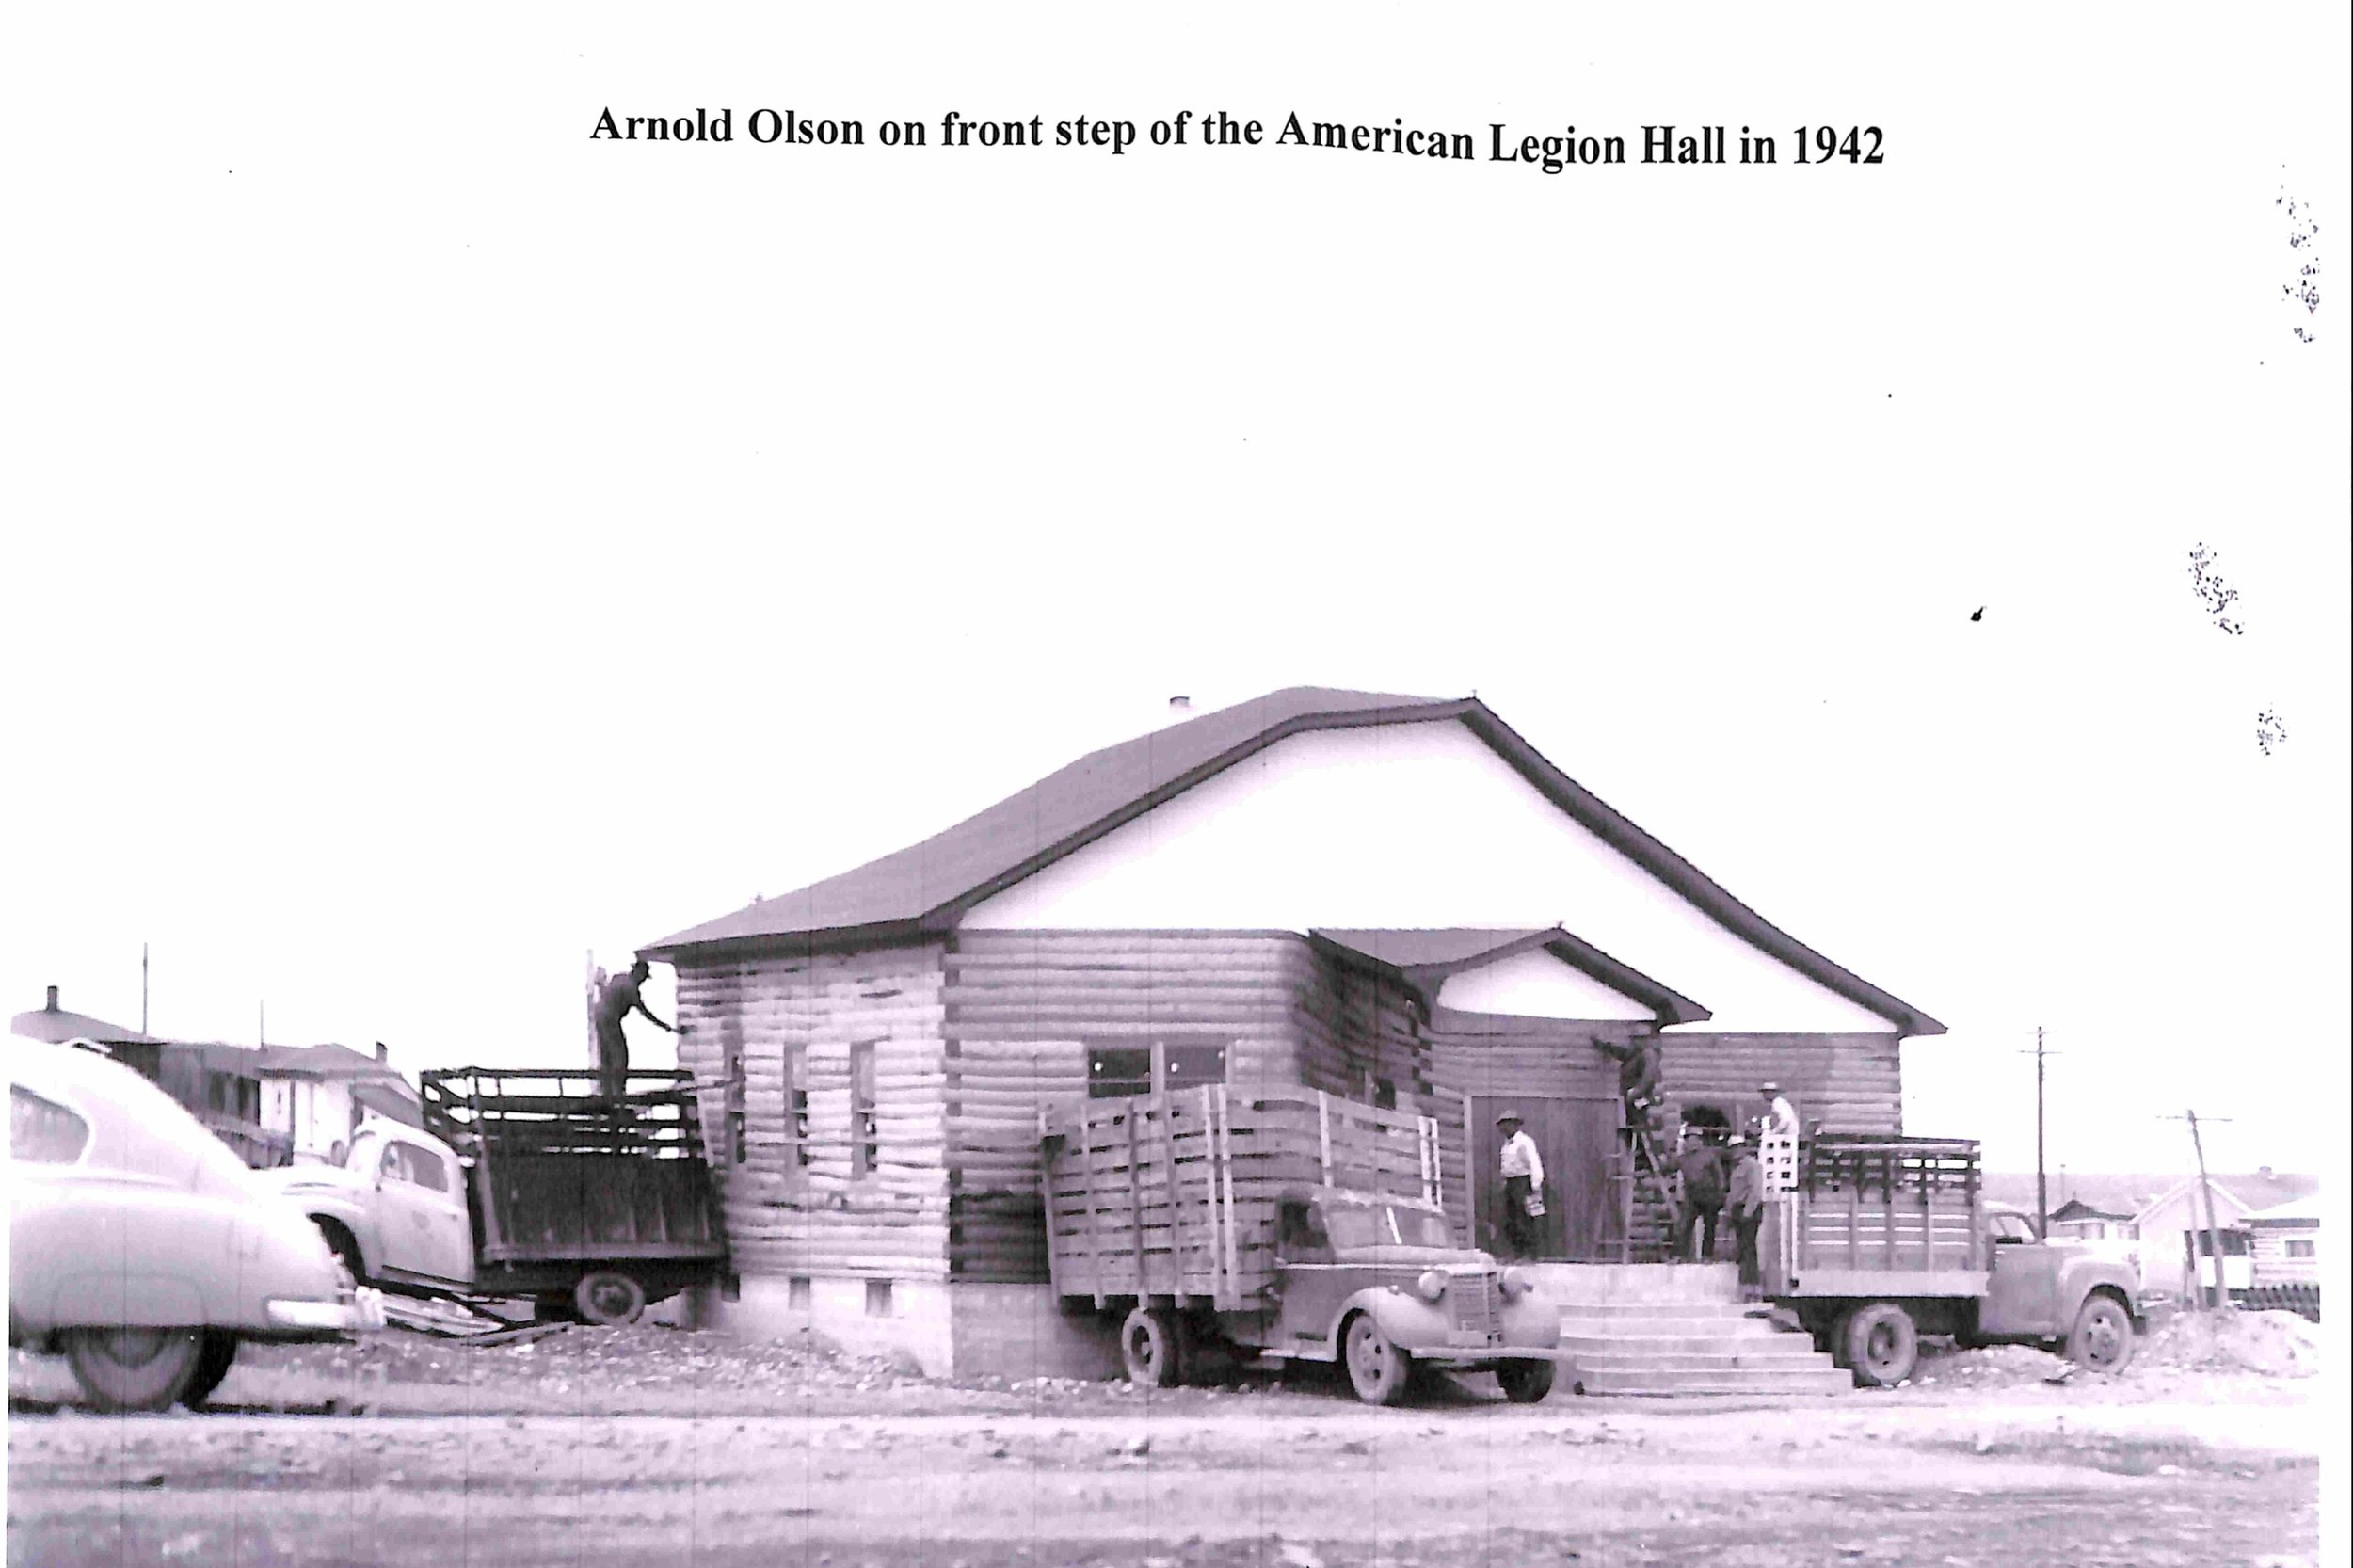 Arnold Olson at the American Legion